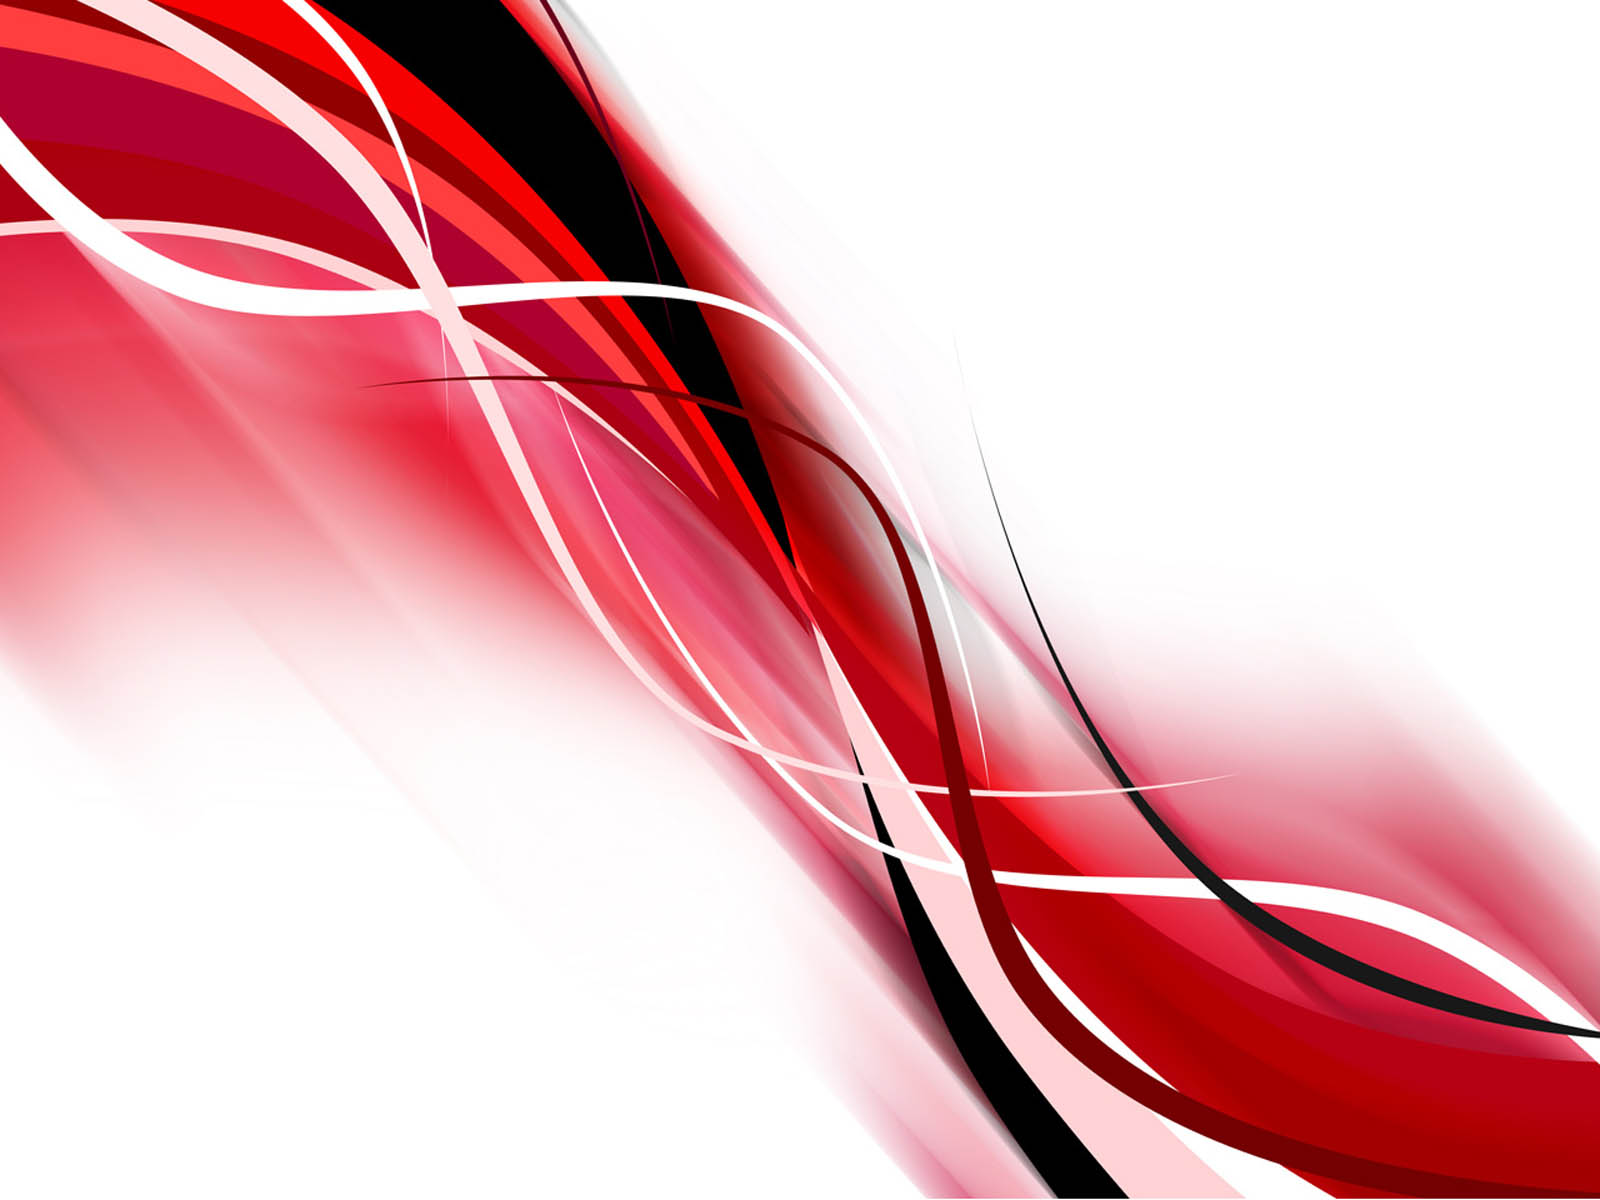 Abstract Wallpaper Red Abstract red wallpapers